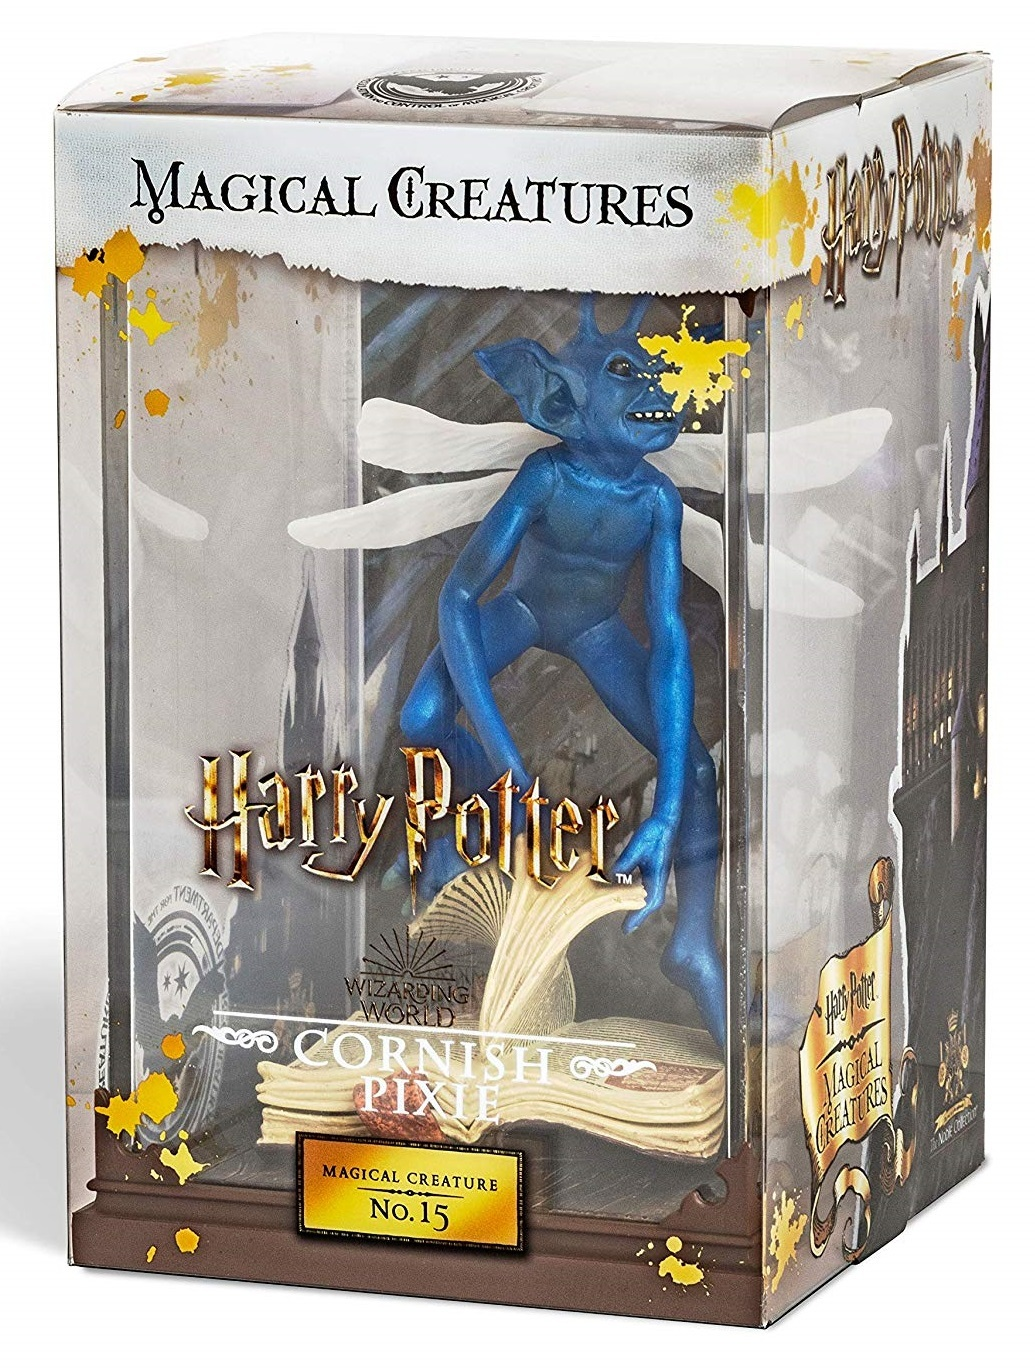 Harry Potter: Magical Creatures Diorama - Cornish Pixie (No.15) image